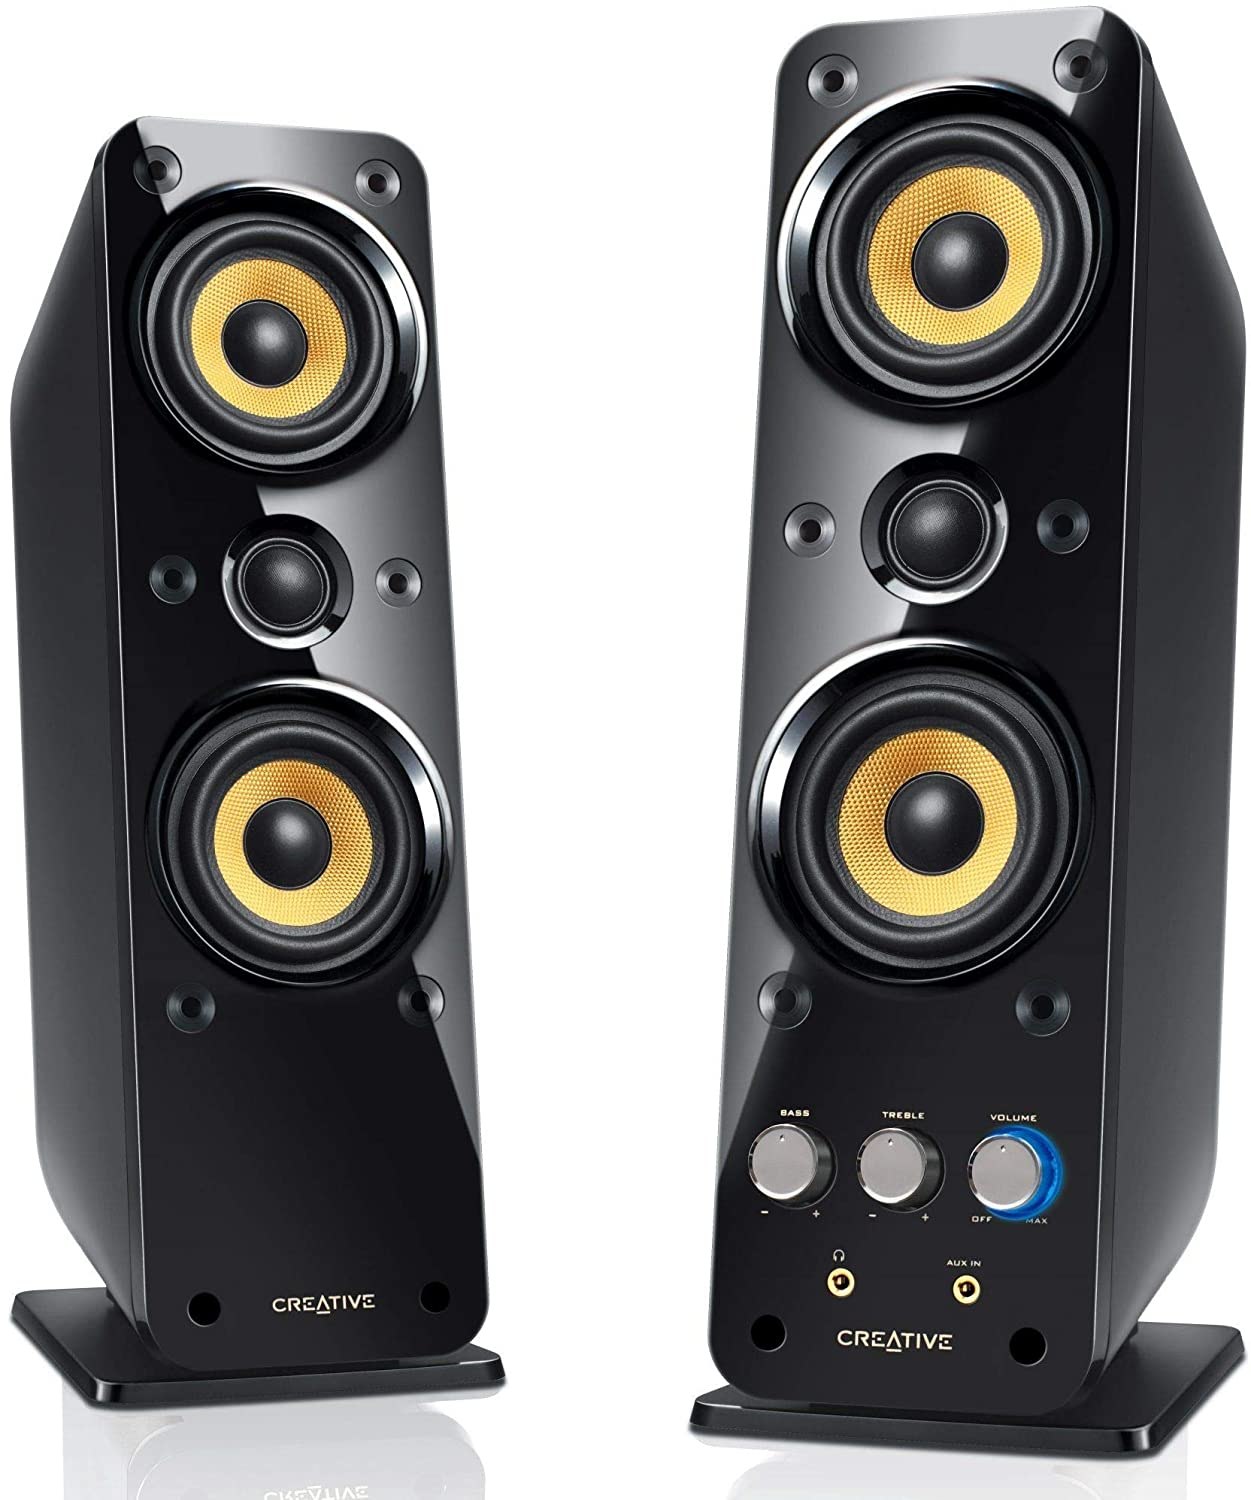 Creative GigaWorks T40 Series II 2.0 Multimedia Speaker System with BasXPort Technology 51MF1615AA002